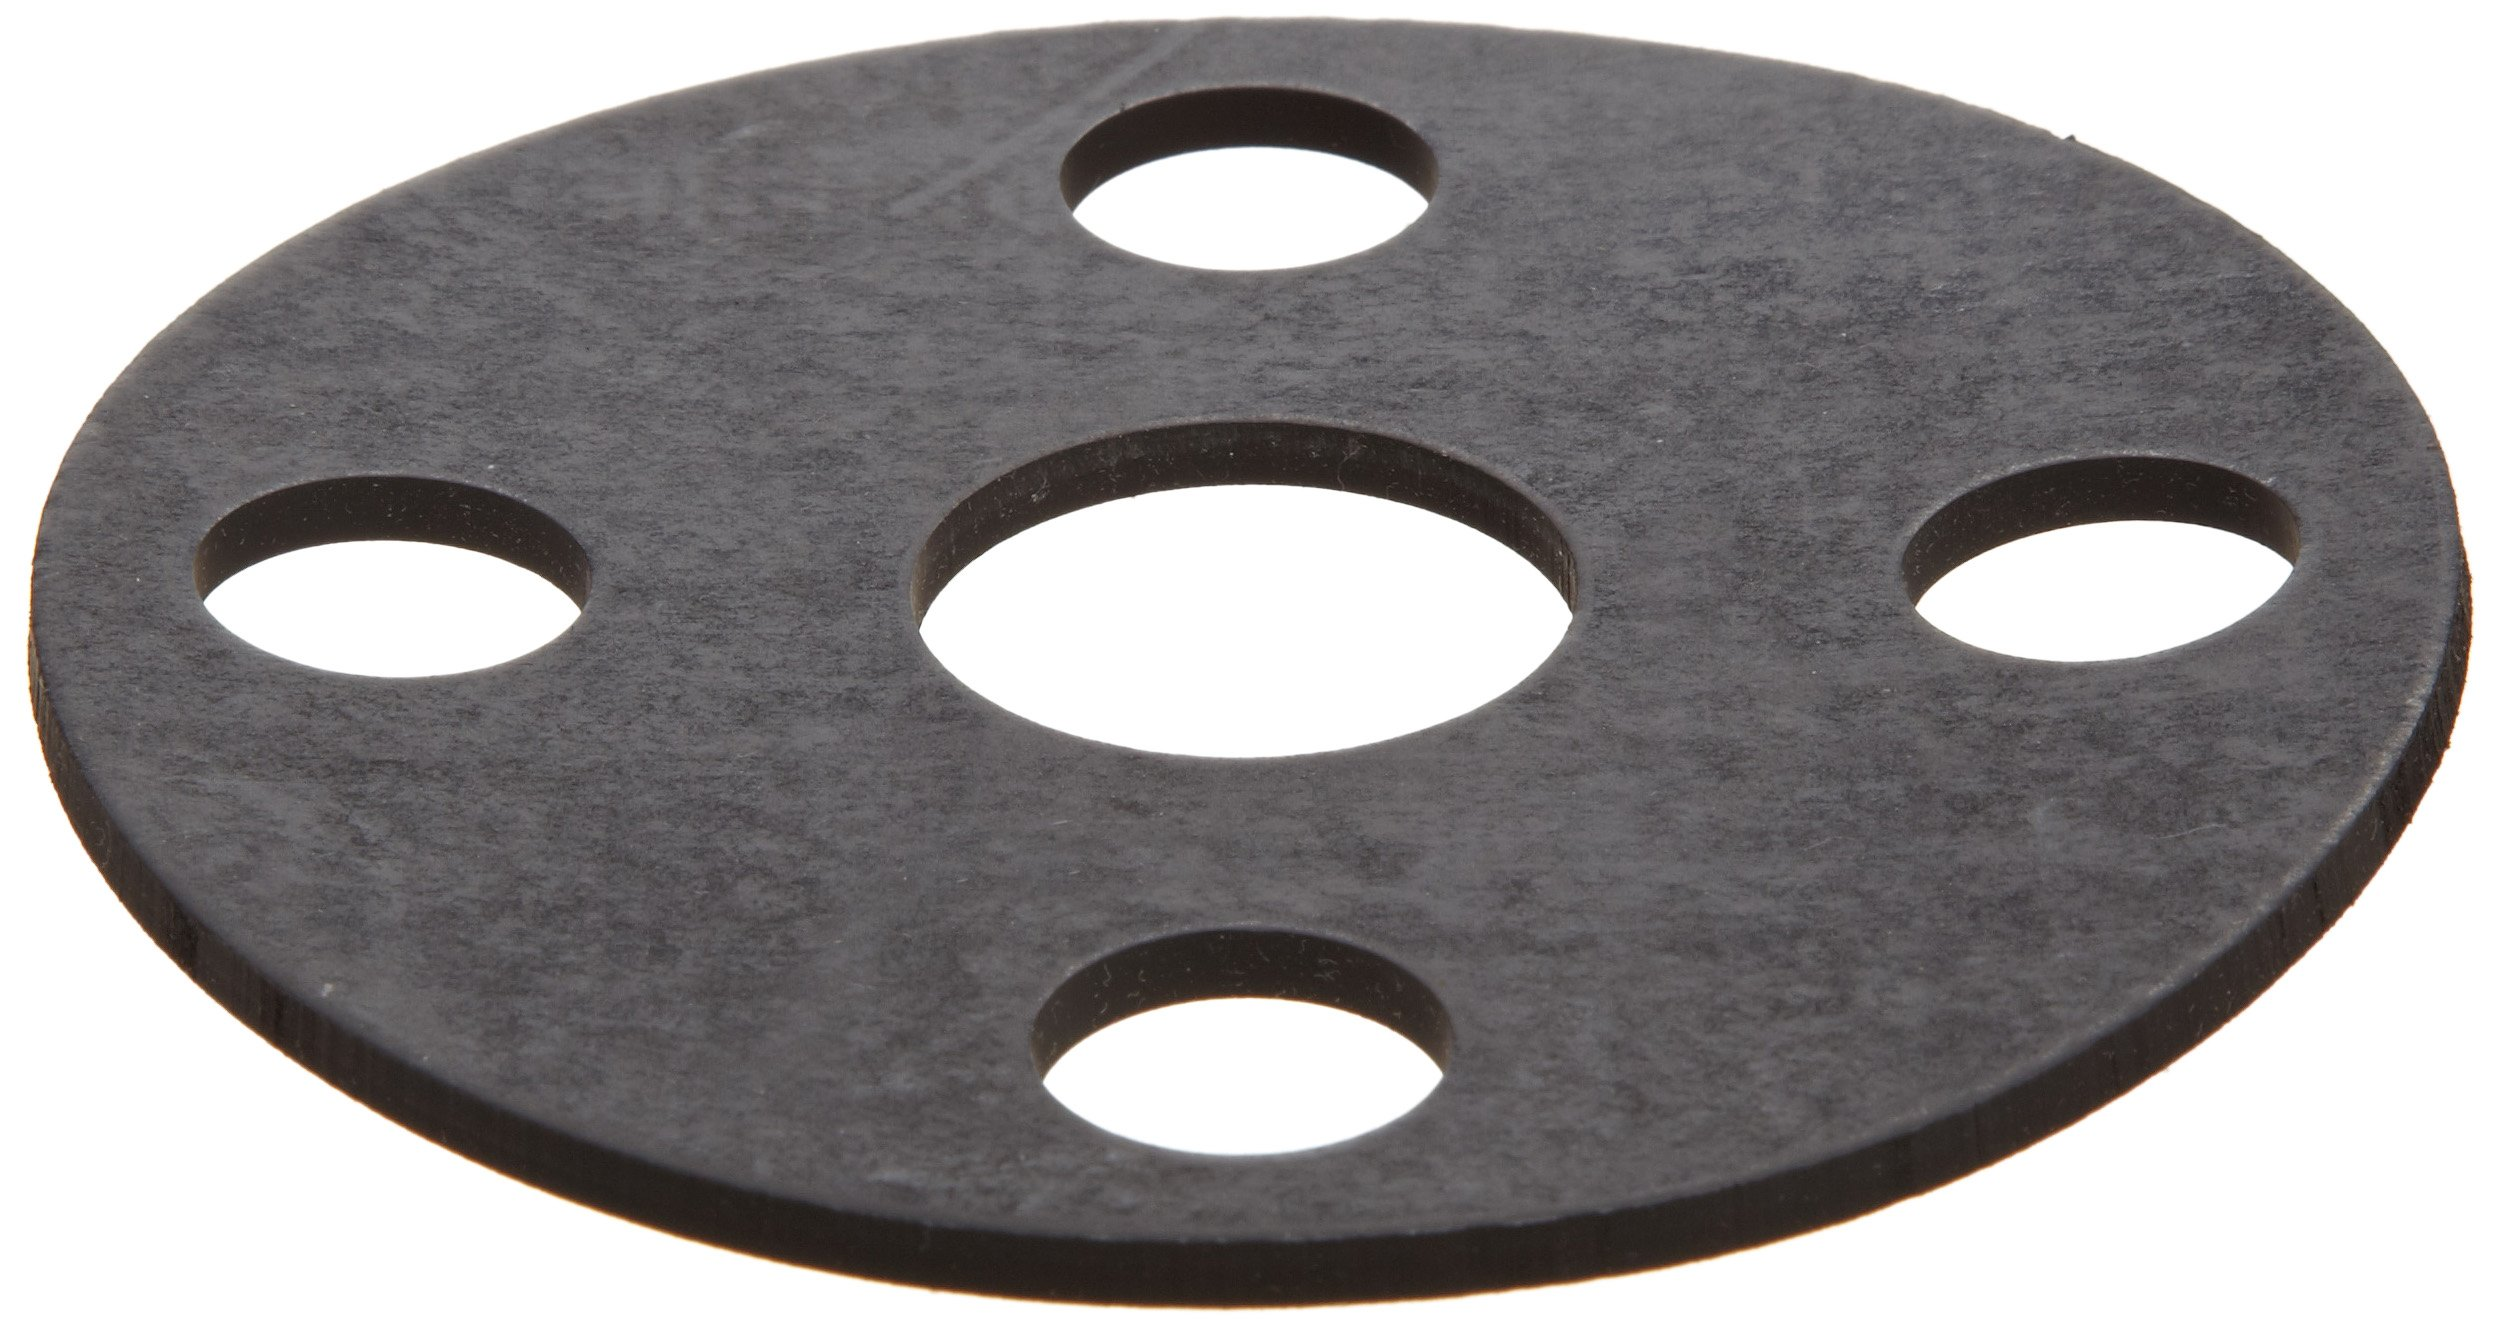 Viton Fluoroelastomer Flange Gasket, Full Face, Black, Fits Class 150 Flange, 1/8'' Thick, 2'' Pipe Size, 2-3/8'' ID, 6'' OD (Pack of 1) by Small Parts